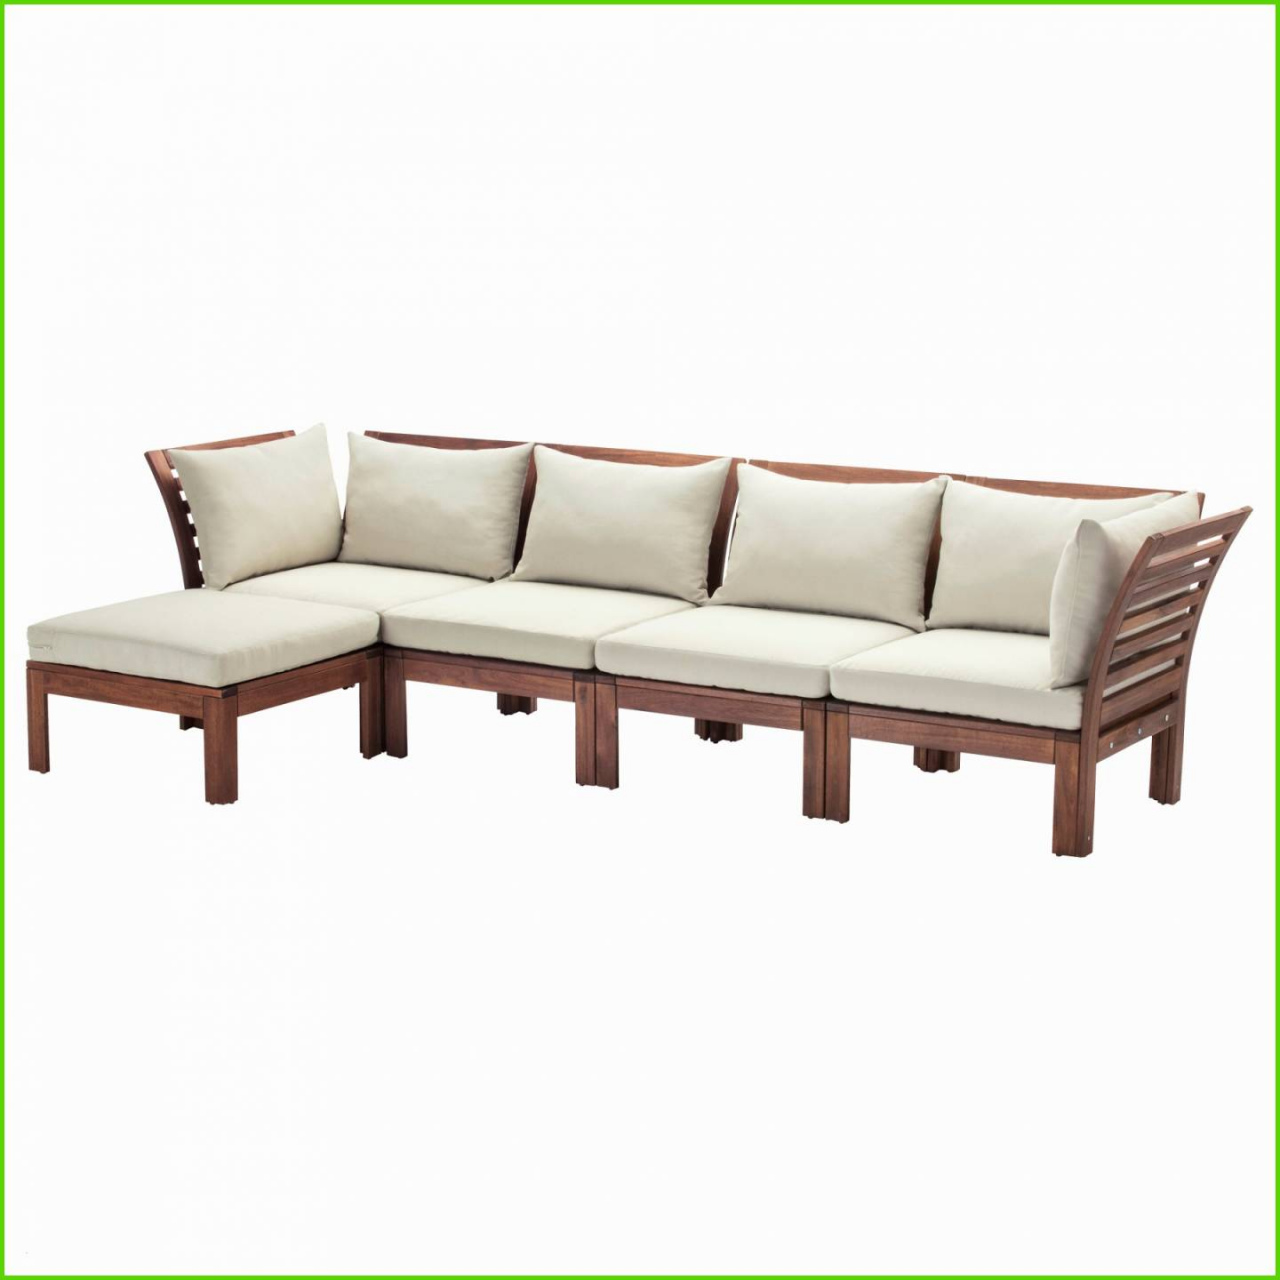 outdoor daybed outdoor sofa holz rattan outdoor furniture fresh sofa design durch outdoor daybed 1